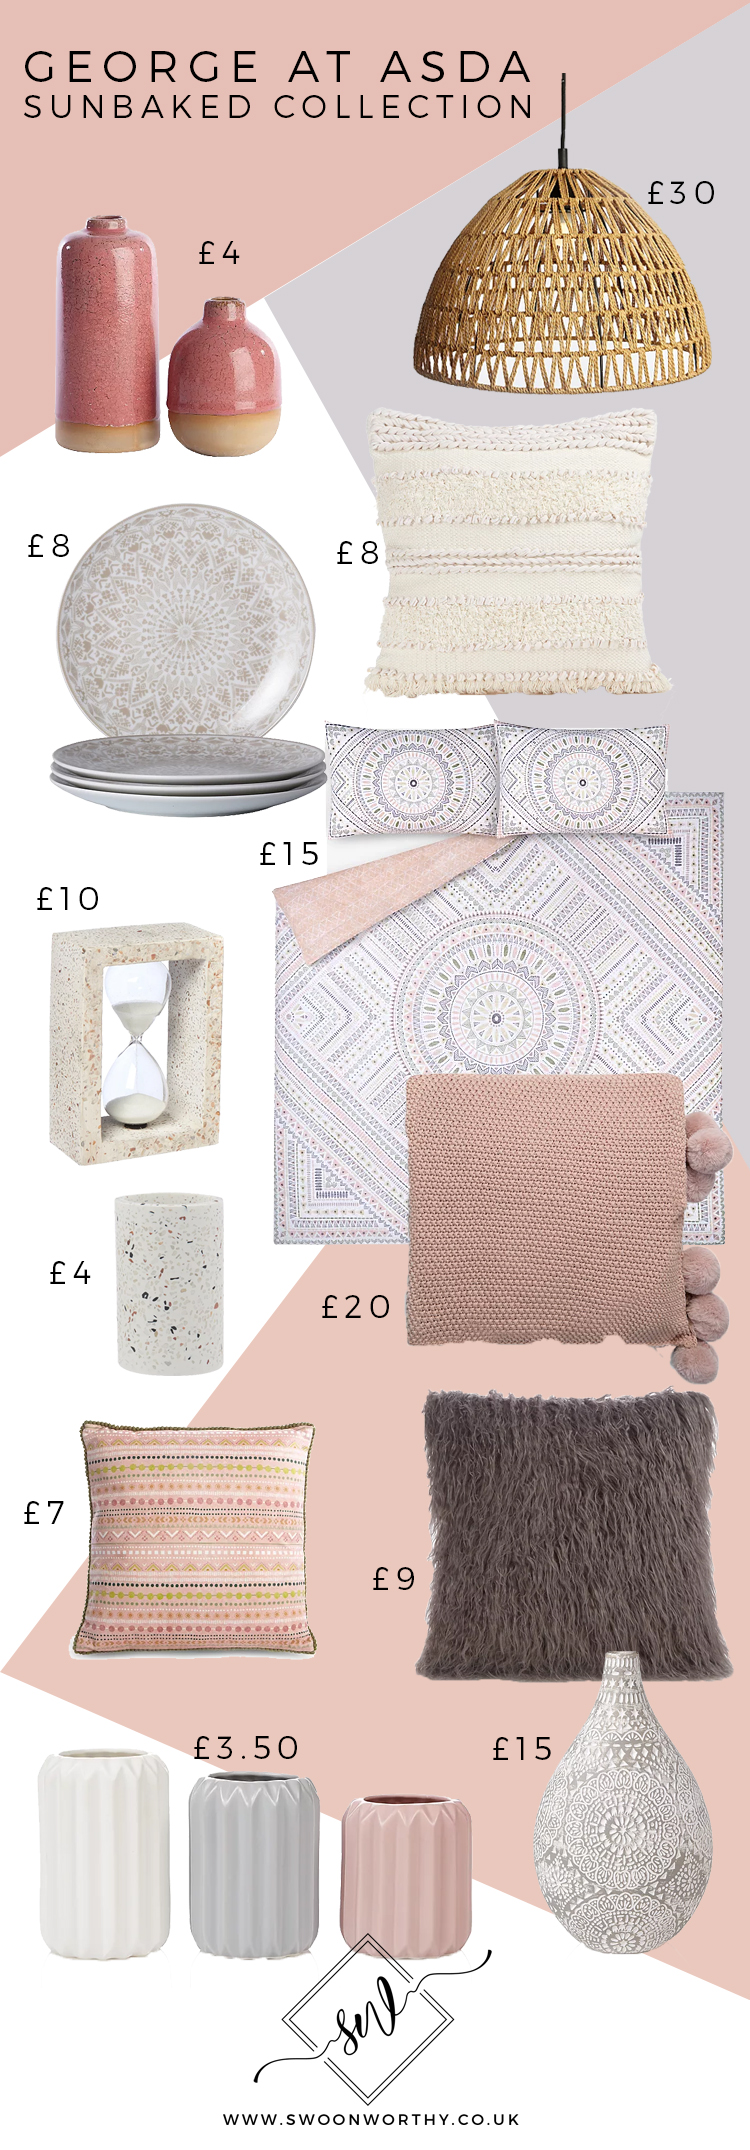 George at Asda Sunbaked Collection buying guide